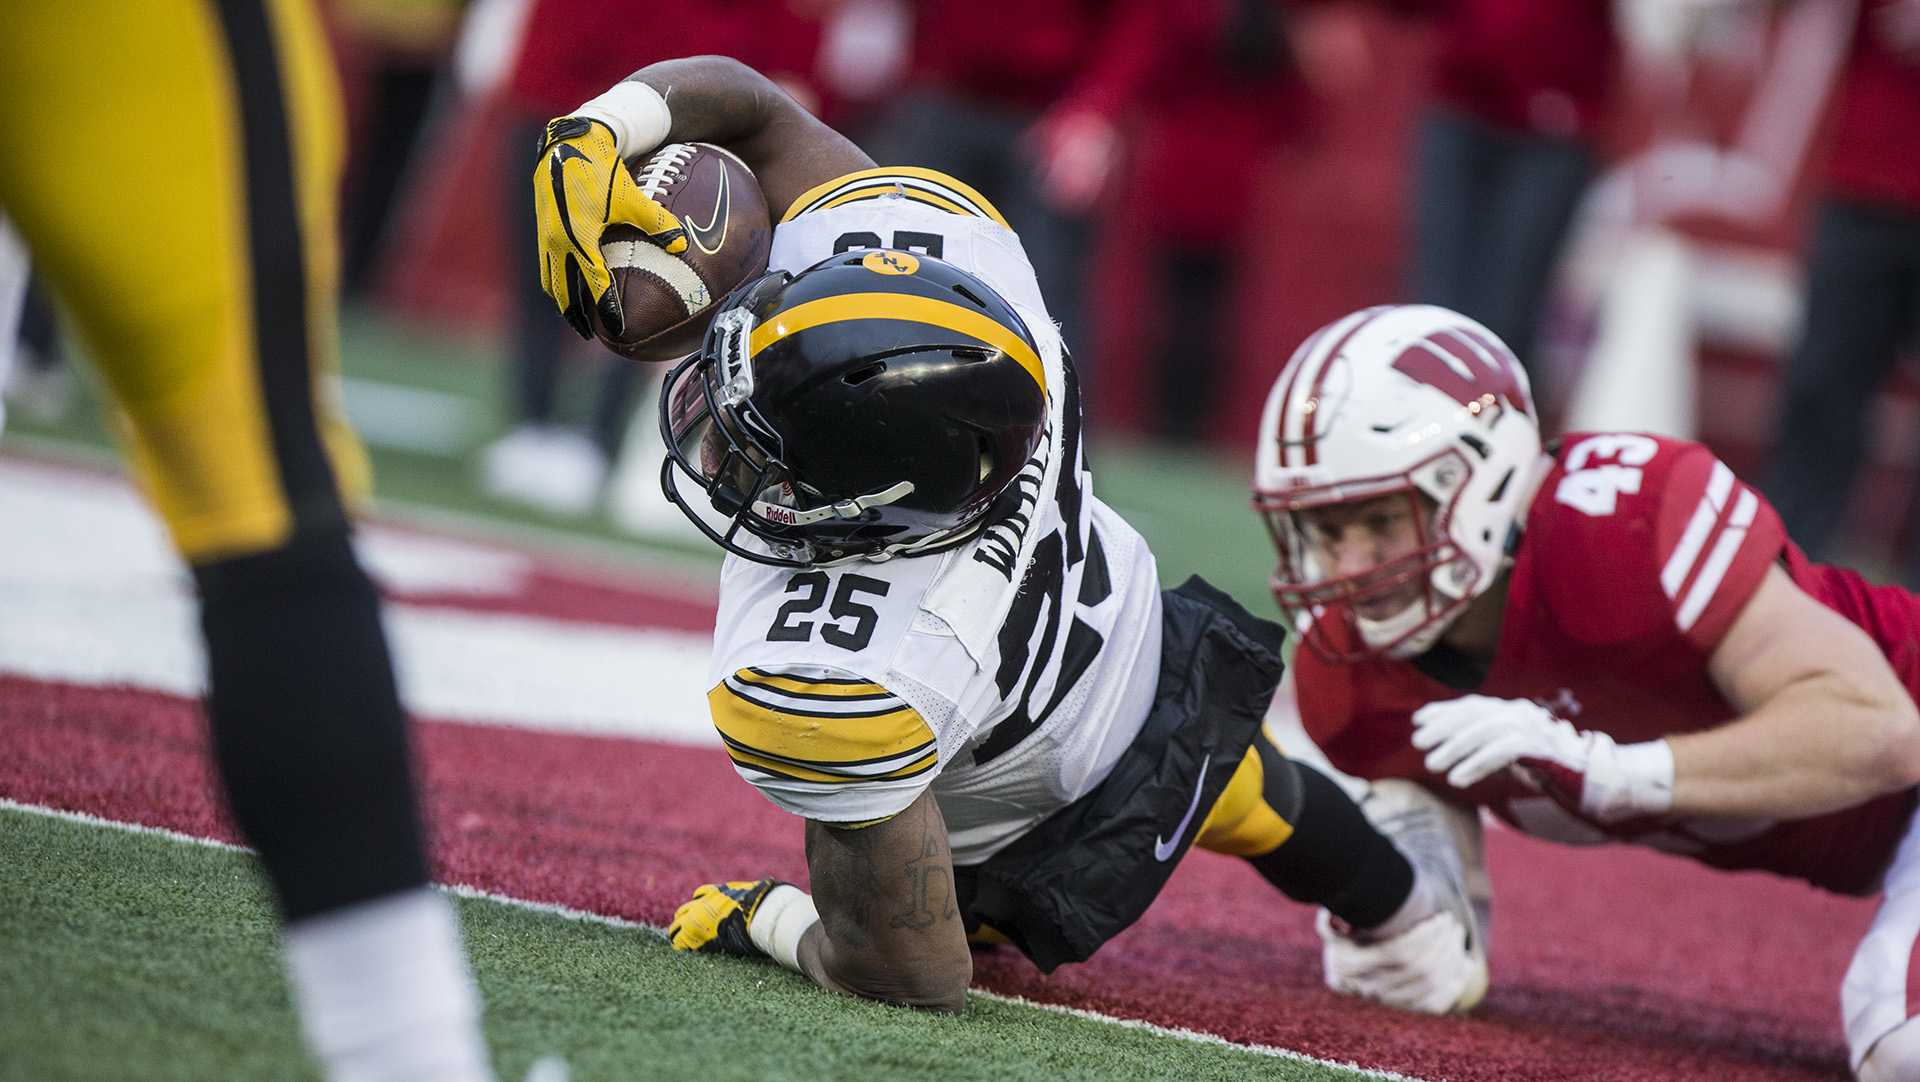 Iowa running back Akrum Wadley (25) is tackled by Wisconsin's Ryan Connelly (43) just shy of the end zone during the game between Iowa and Wisconsin at Camp Randall Stadium on Saturday, Nov. 11, 2017. The Hawkeyes fell to the Badgers 38-14. (Ben Smith/The Daily Iowan)